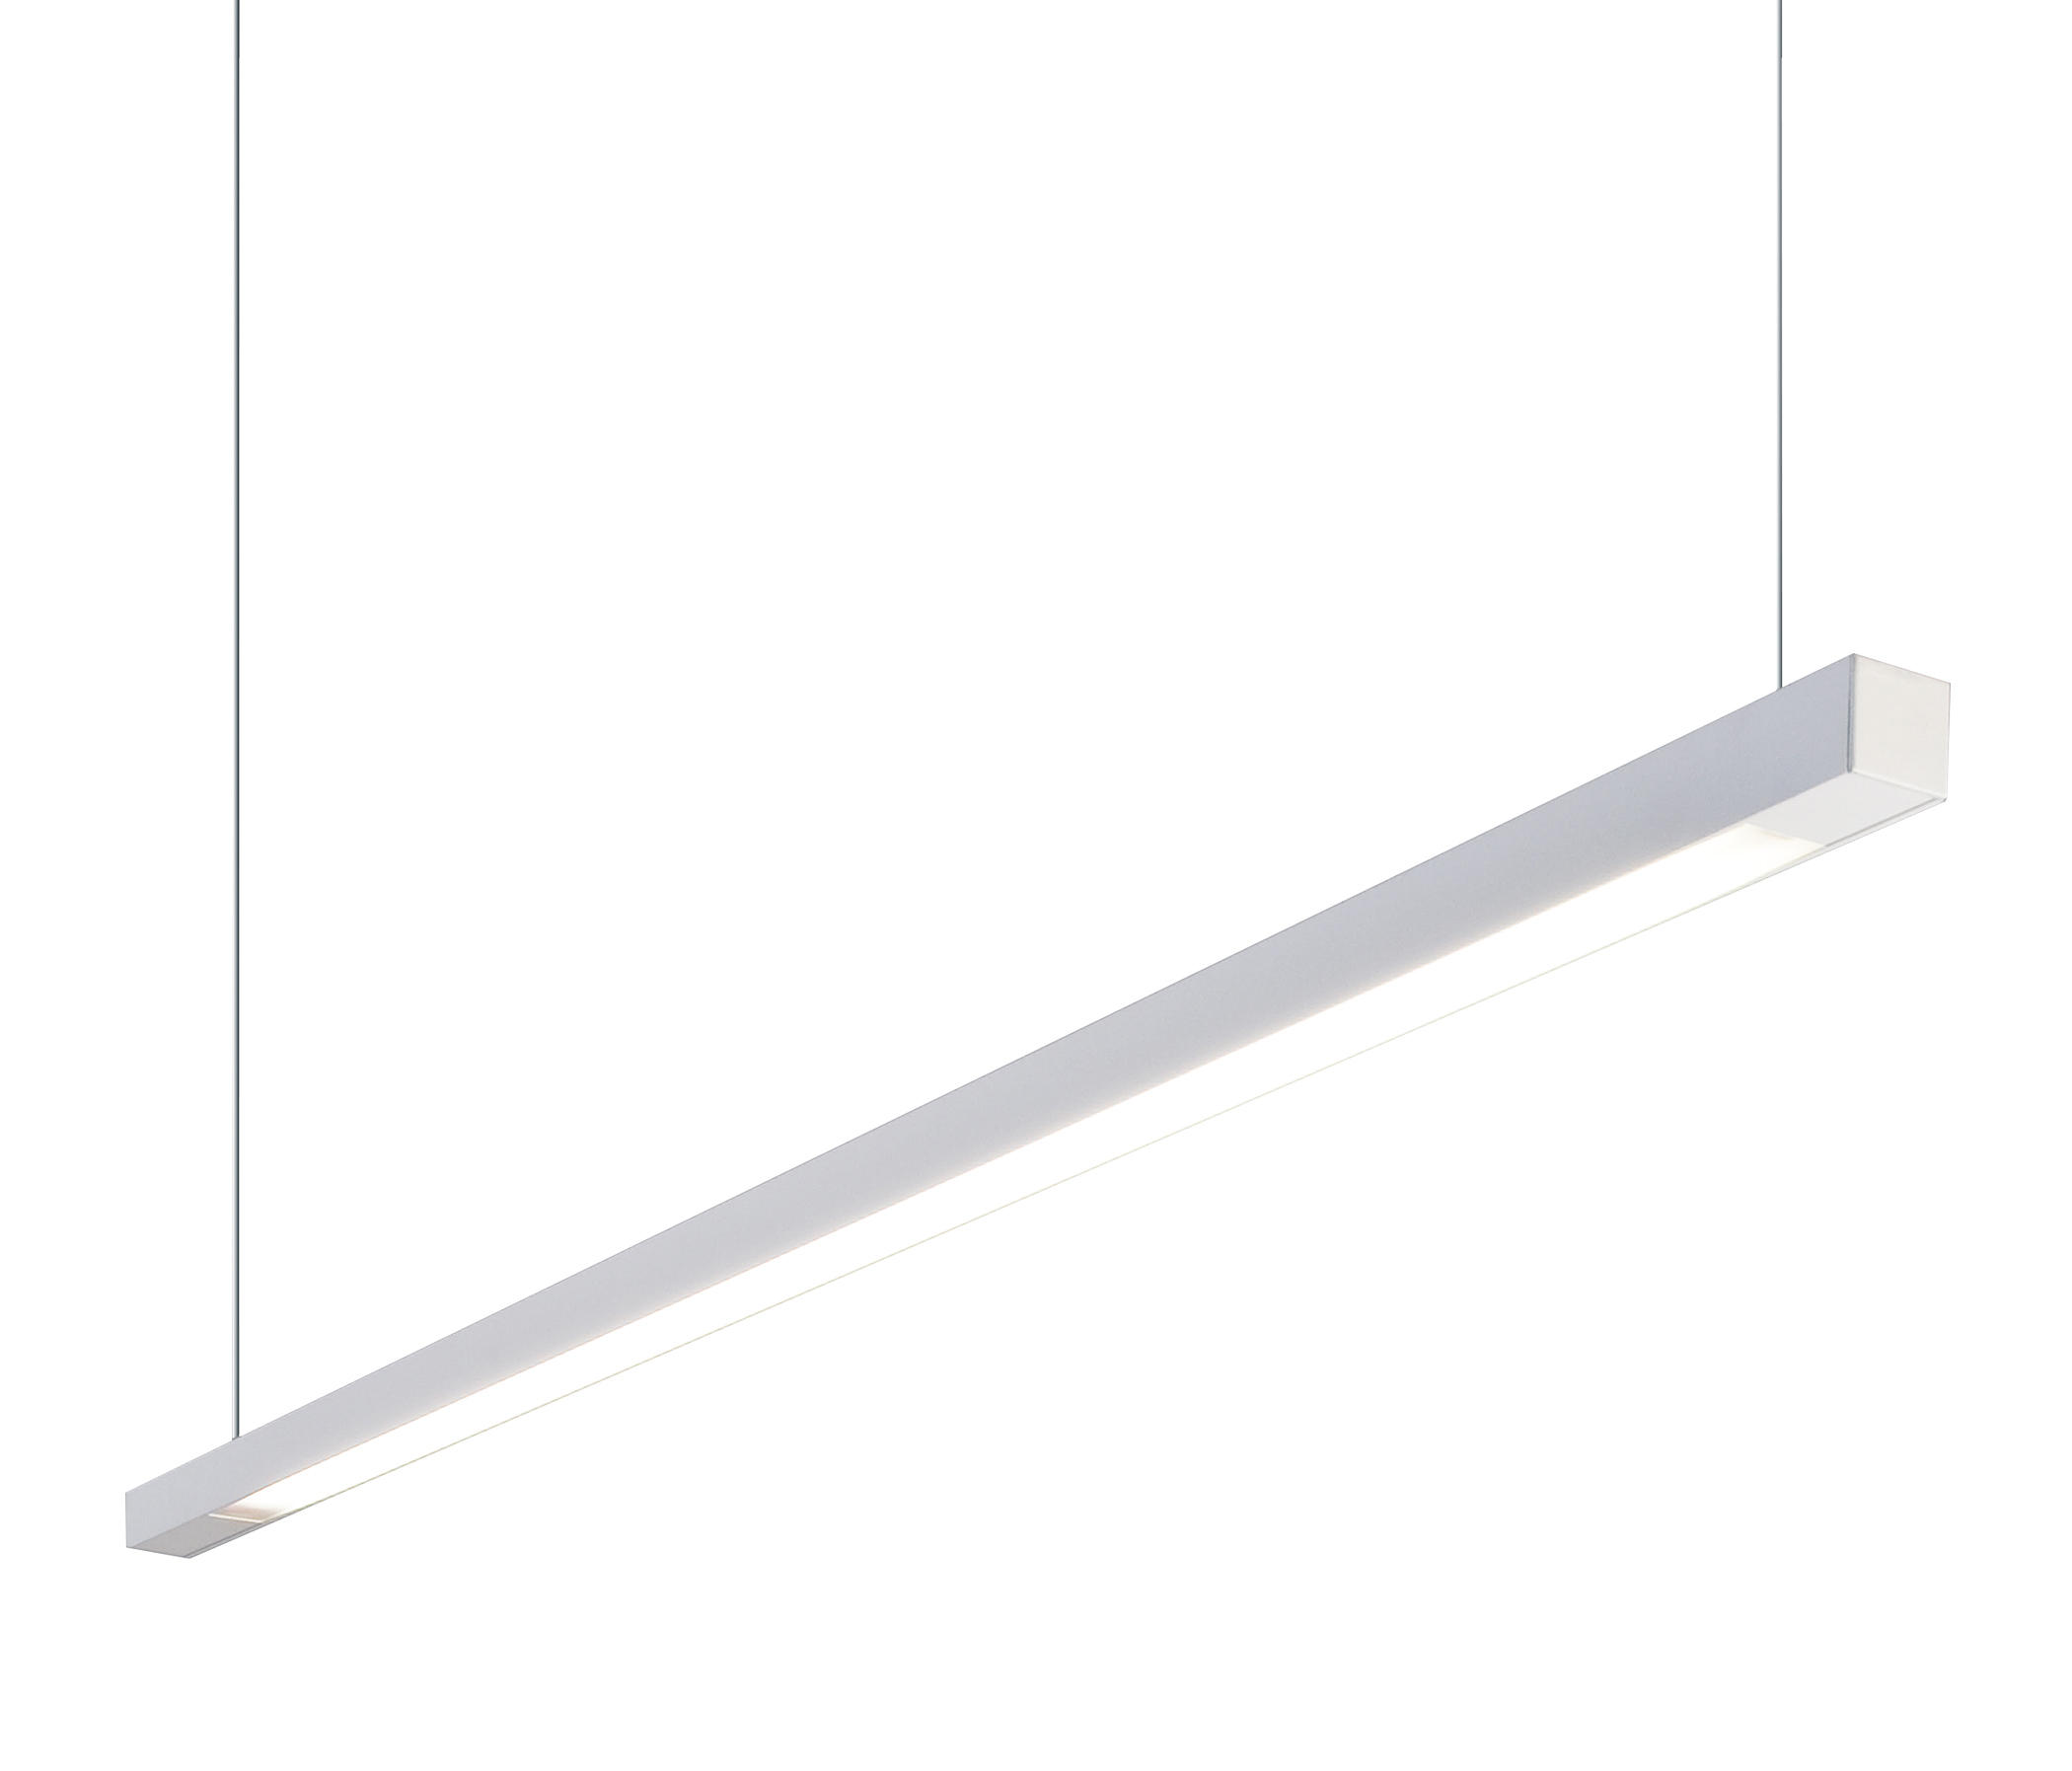 Jb Lighting Micro 150 Sidony Wall Ledflex Wall Lights From Orbit Architonic